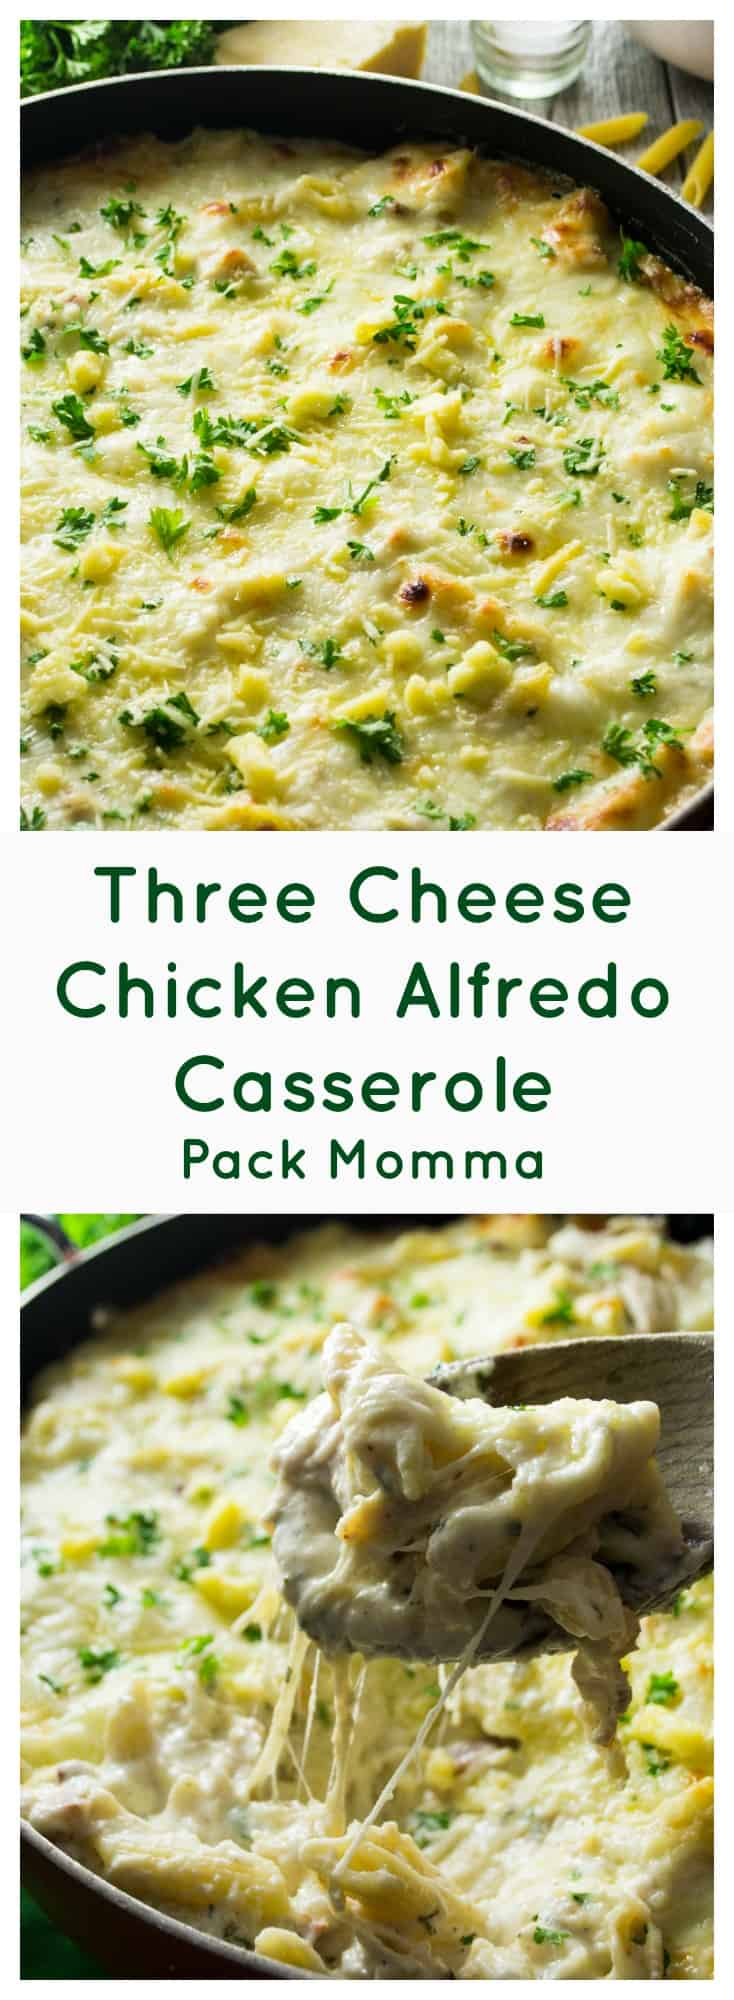 Three Cheese Chicken Alfredo Casserole -Three Cheese Chicken Alfredo Casserole is rich, creamy and the perfect comfort food. Easy to make, this is the ultimate dinner for cheese lovers! | Pack Momma | https://www.packmomma.com